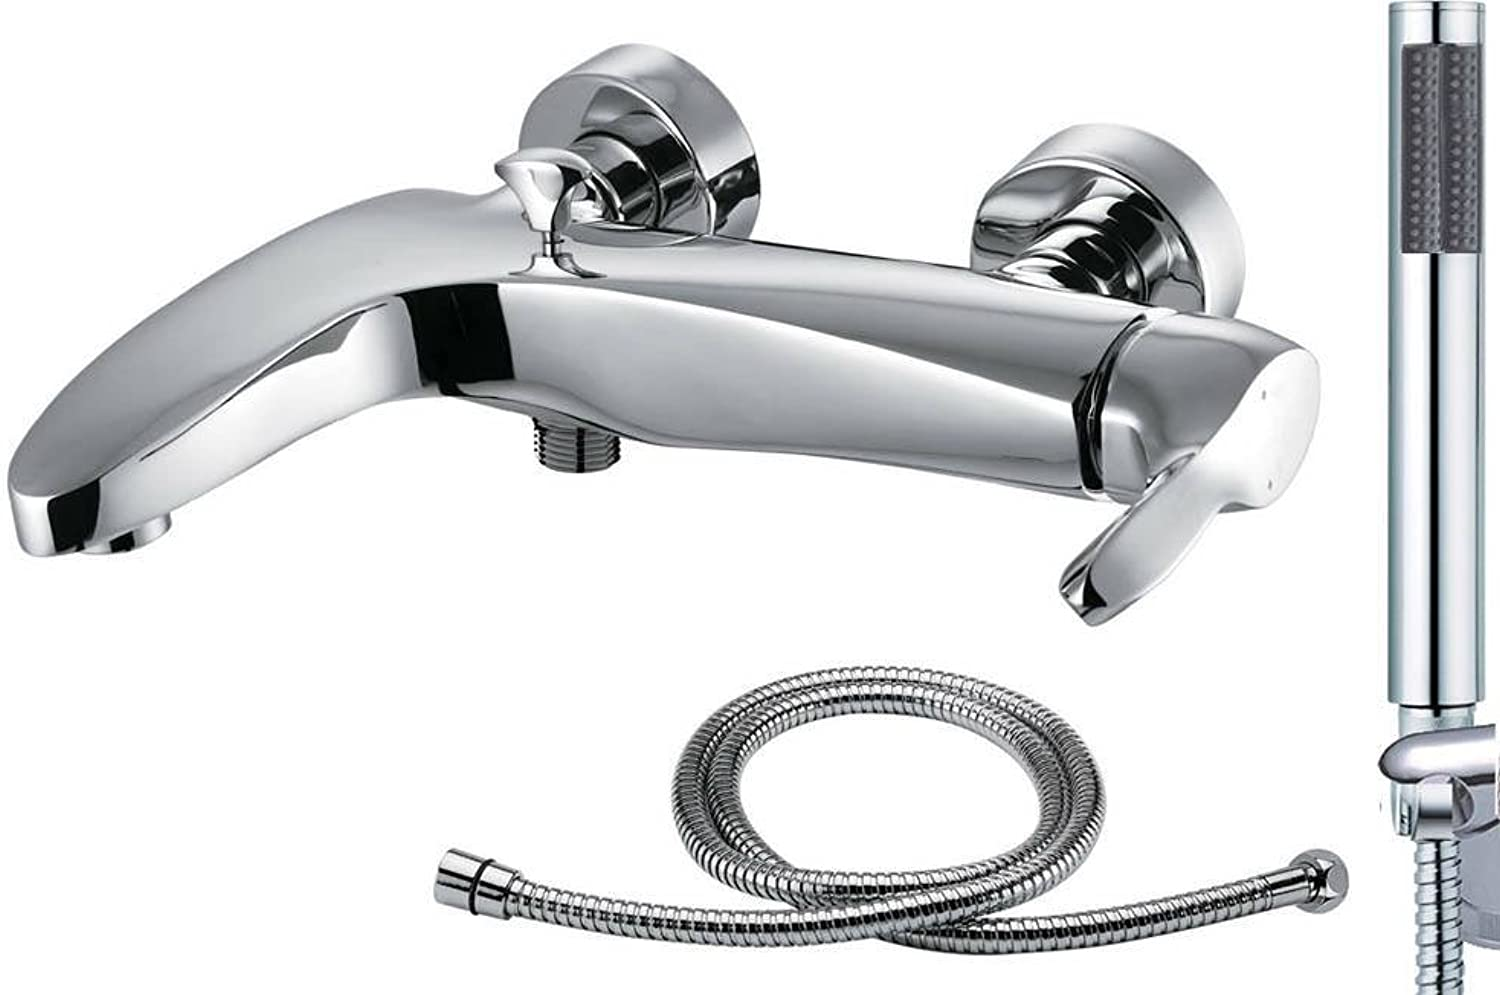 Bath Bathroom Wall Mounted Shower Mixer Chrome Shower Head 1.5m Hose (Spree 4)